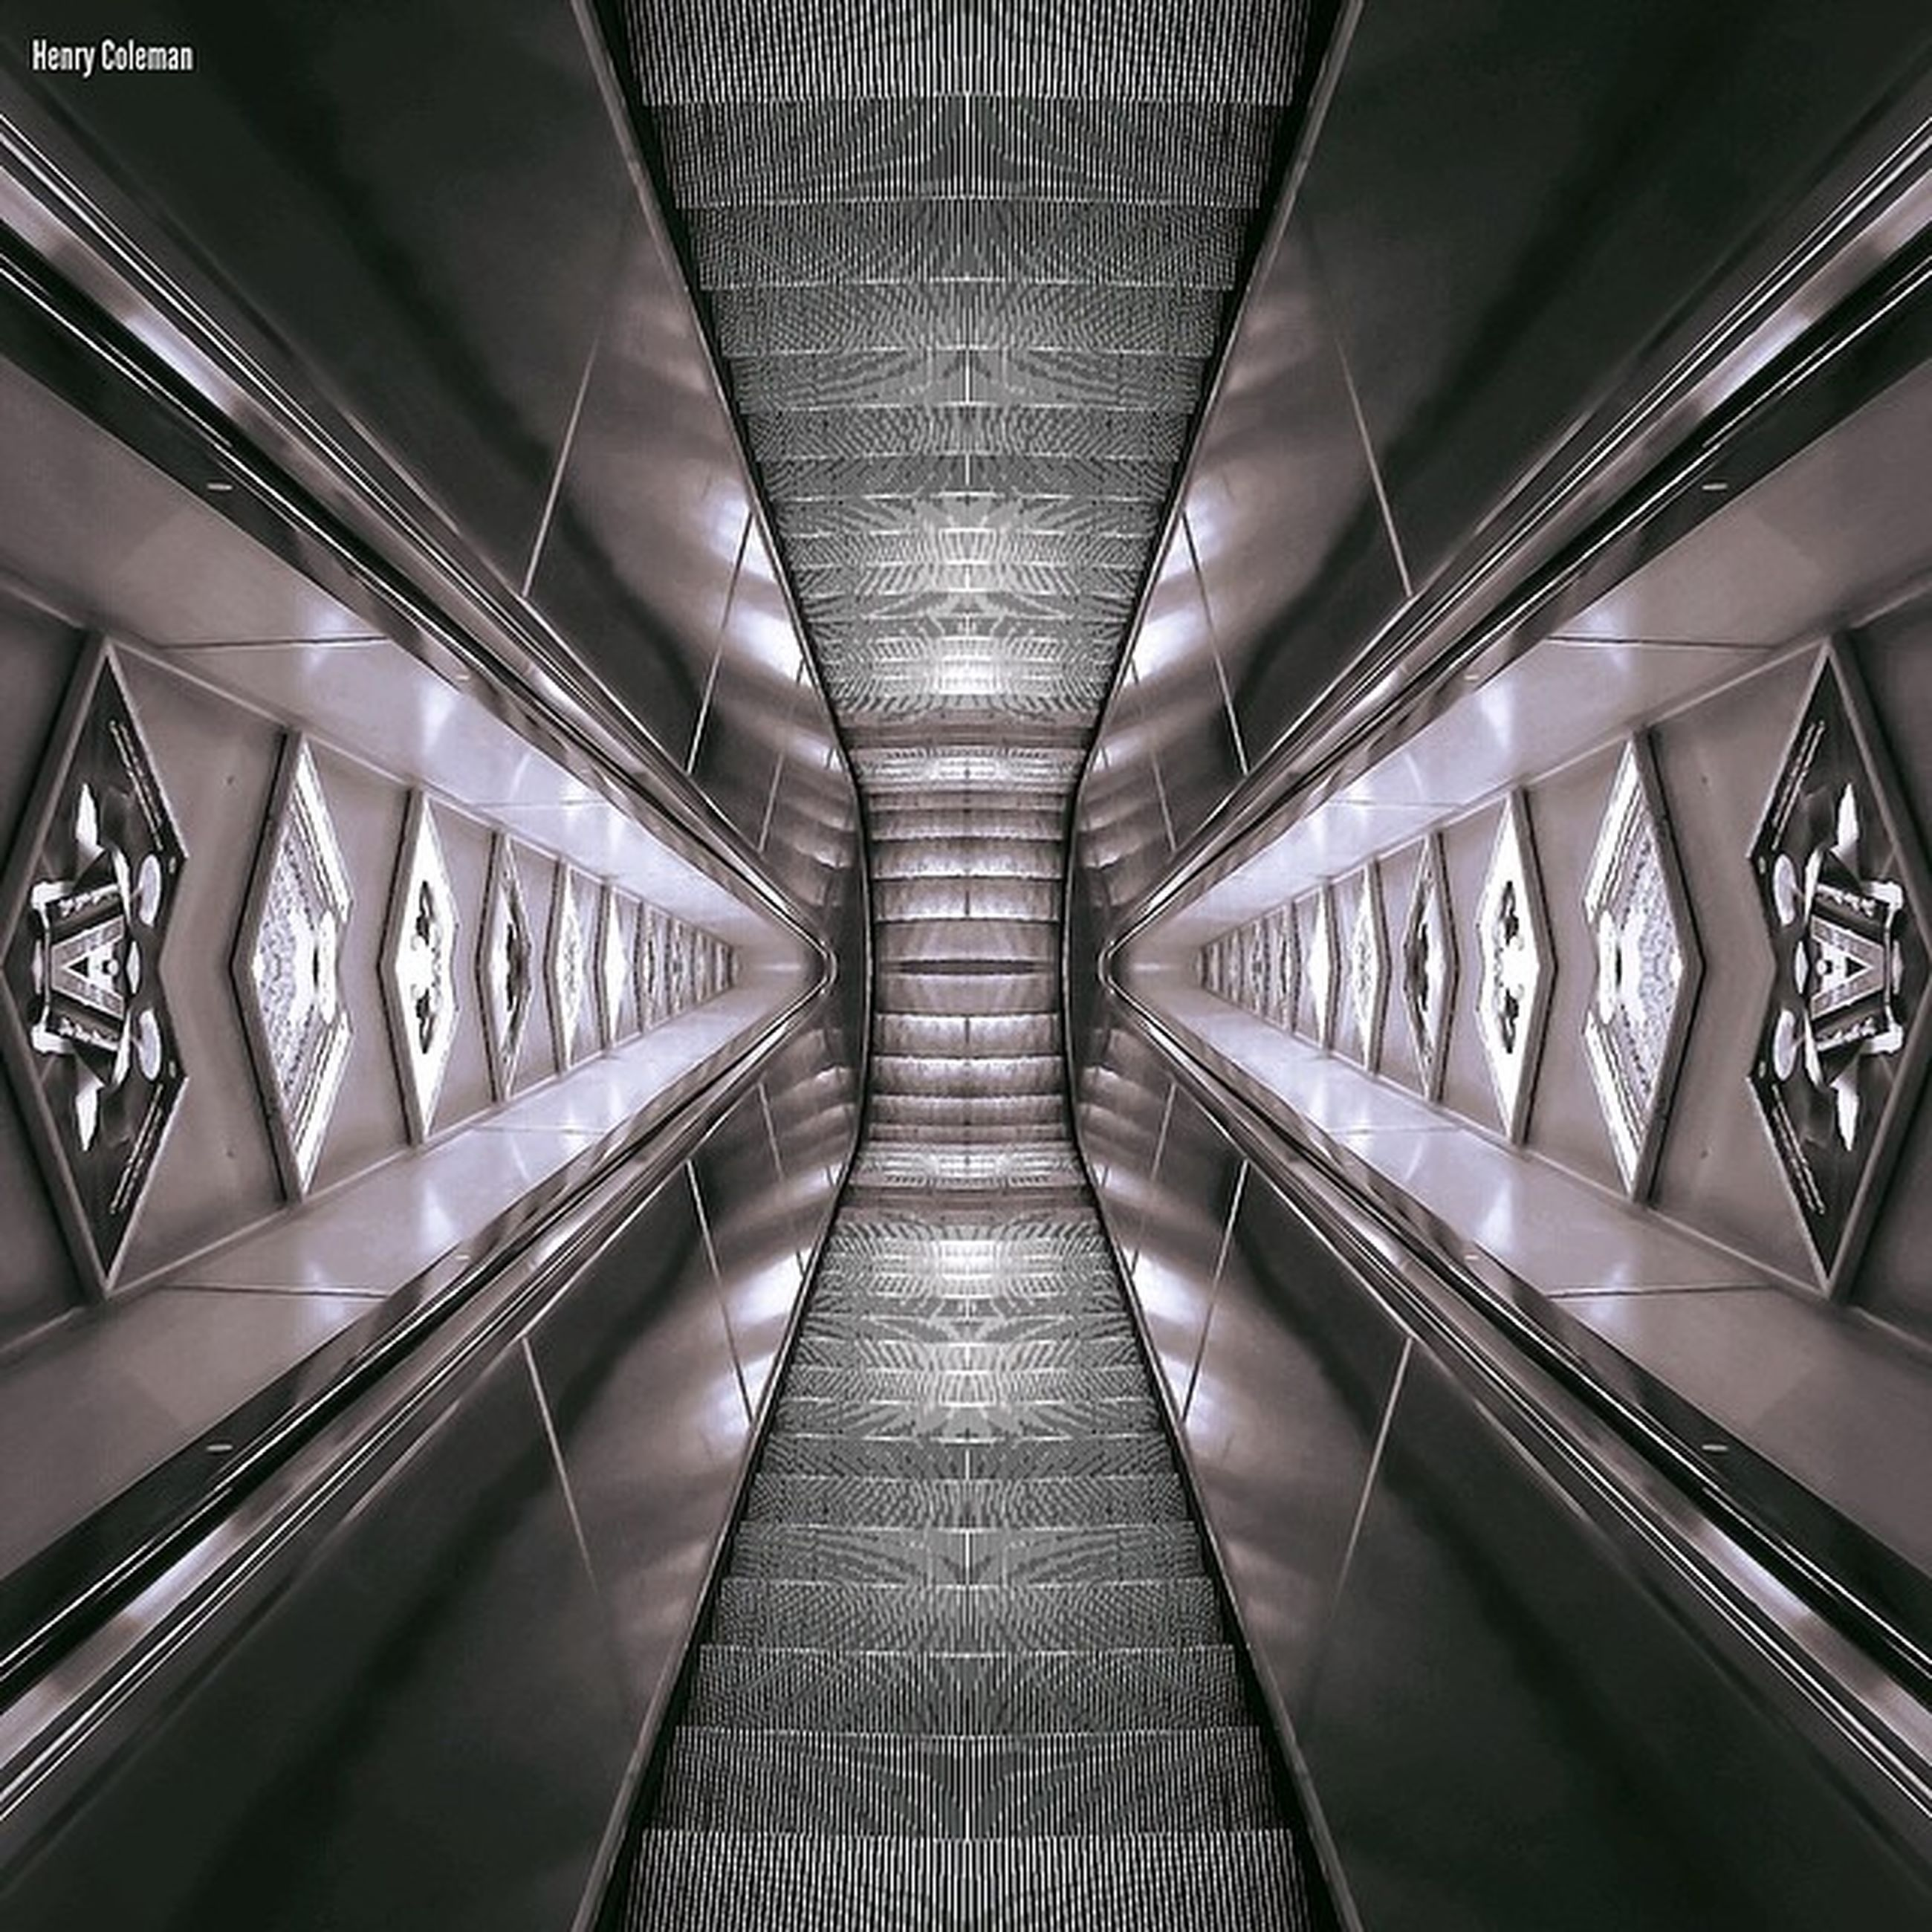 indoors, ceiling, transportation, the way forward, diminishing perspective, architecture, built structure, railing, low angle view, empty, modern, vanishing point, absence, interior, no people, connection, pattern, high angle view, in a row, metal